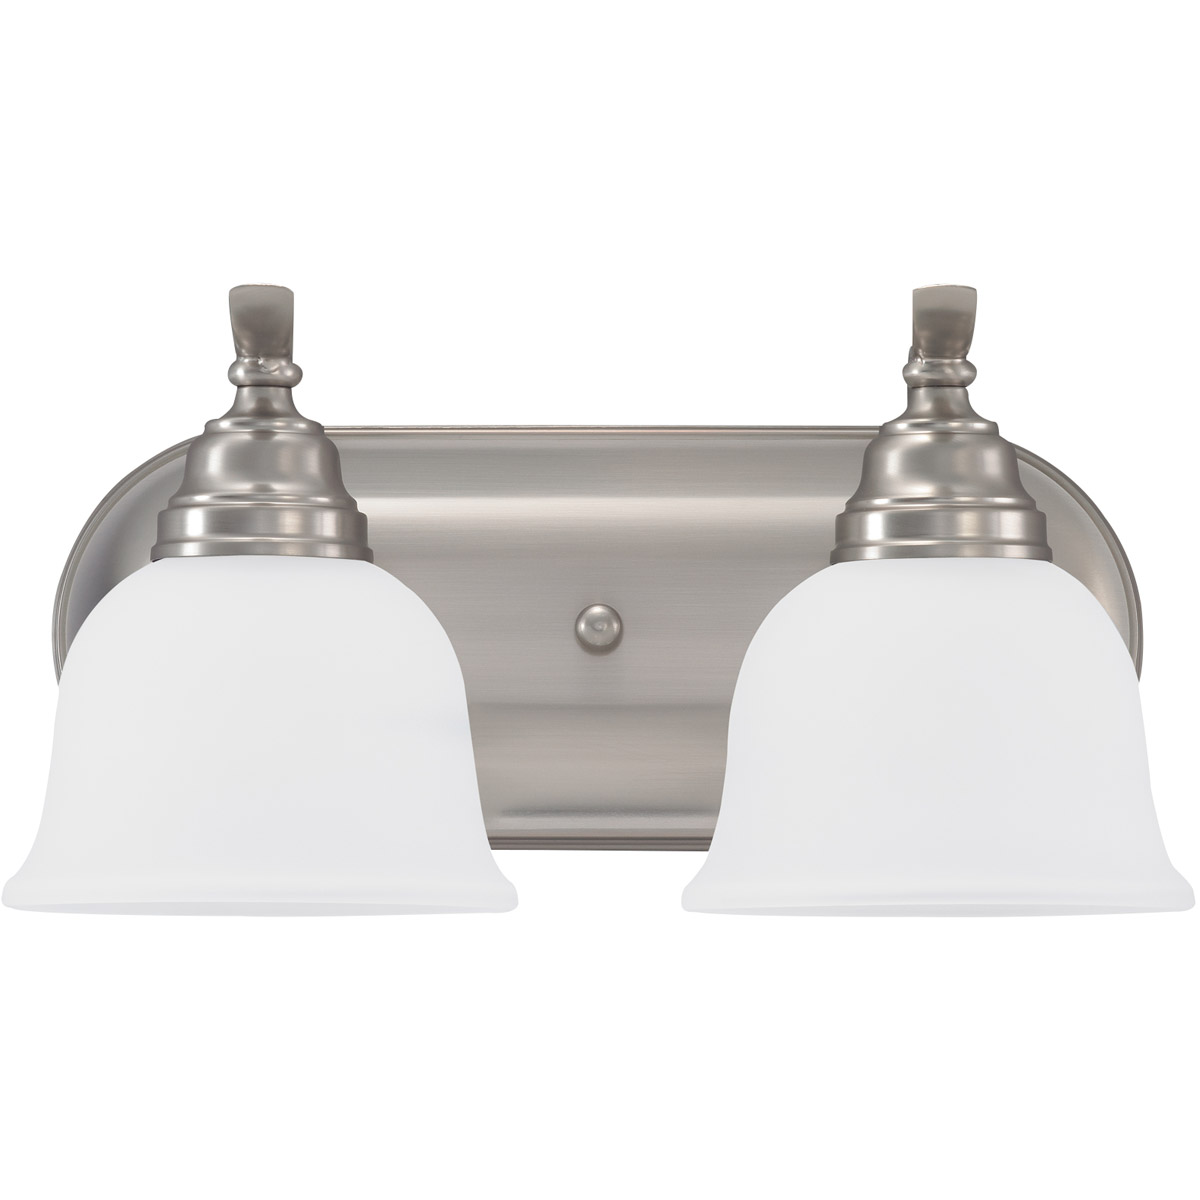 Sea Gull Lighting Wheaton 2 Light Bath Vanity in Brushed Nickel 44626-962 photo